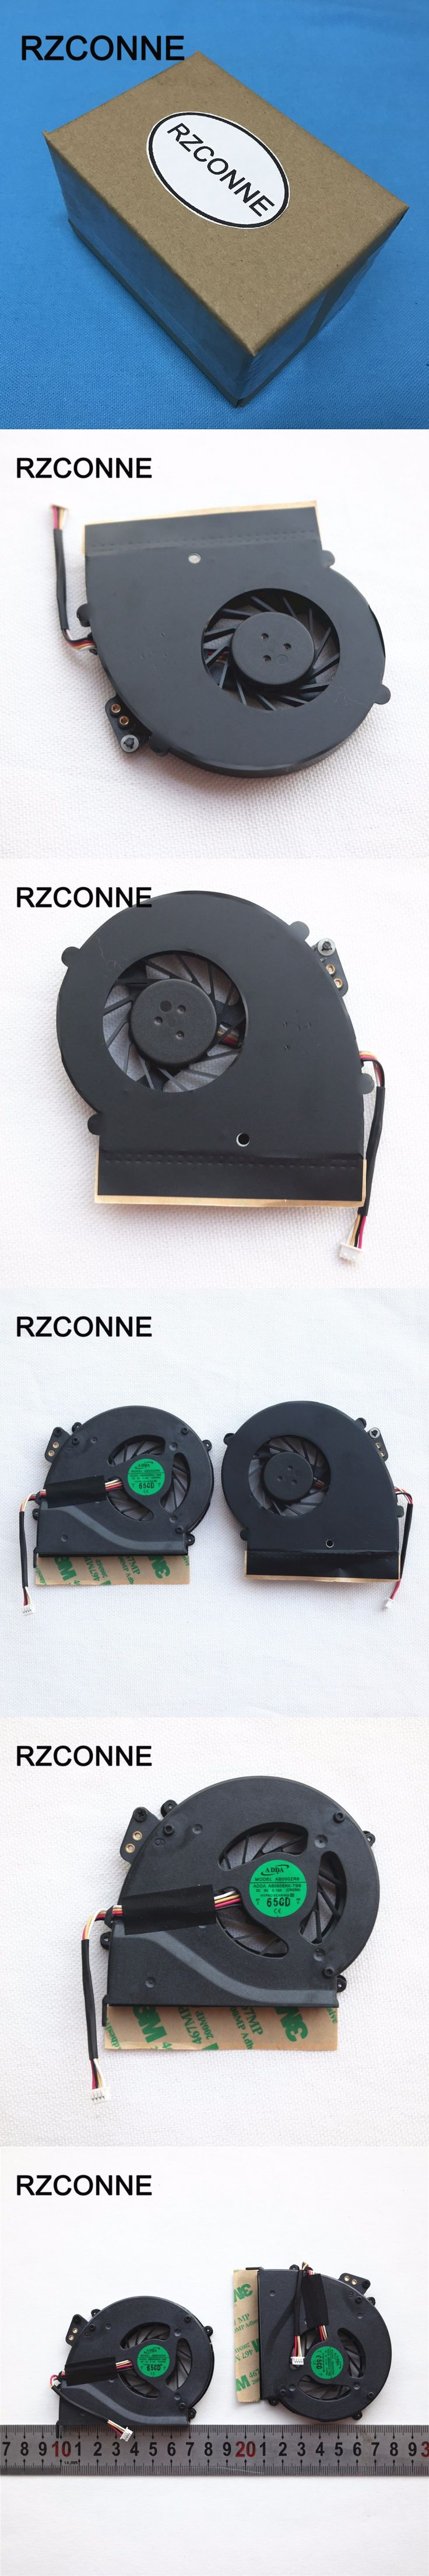 Laptop CPU Cooling Fan for Acer Extensa 5235 5635 5635G 5635Z 5635ZG emachines E528 E728 AB0805HX-TBB CWZR6 New